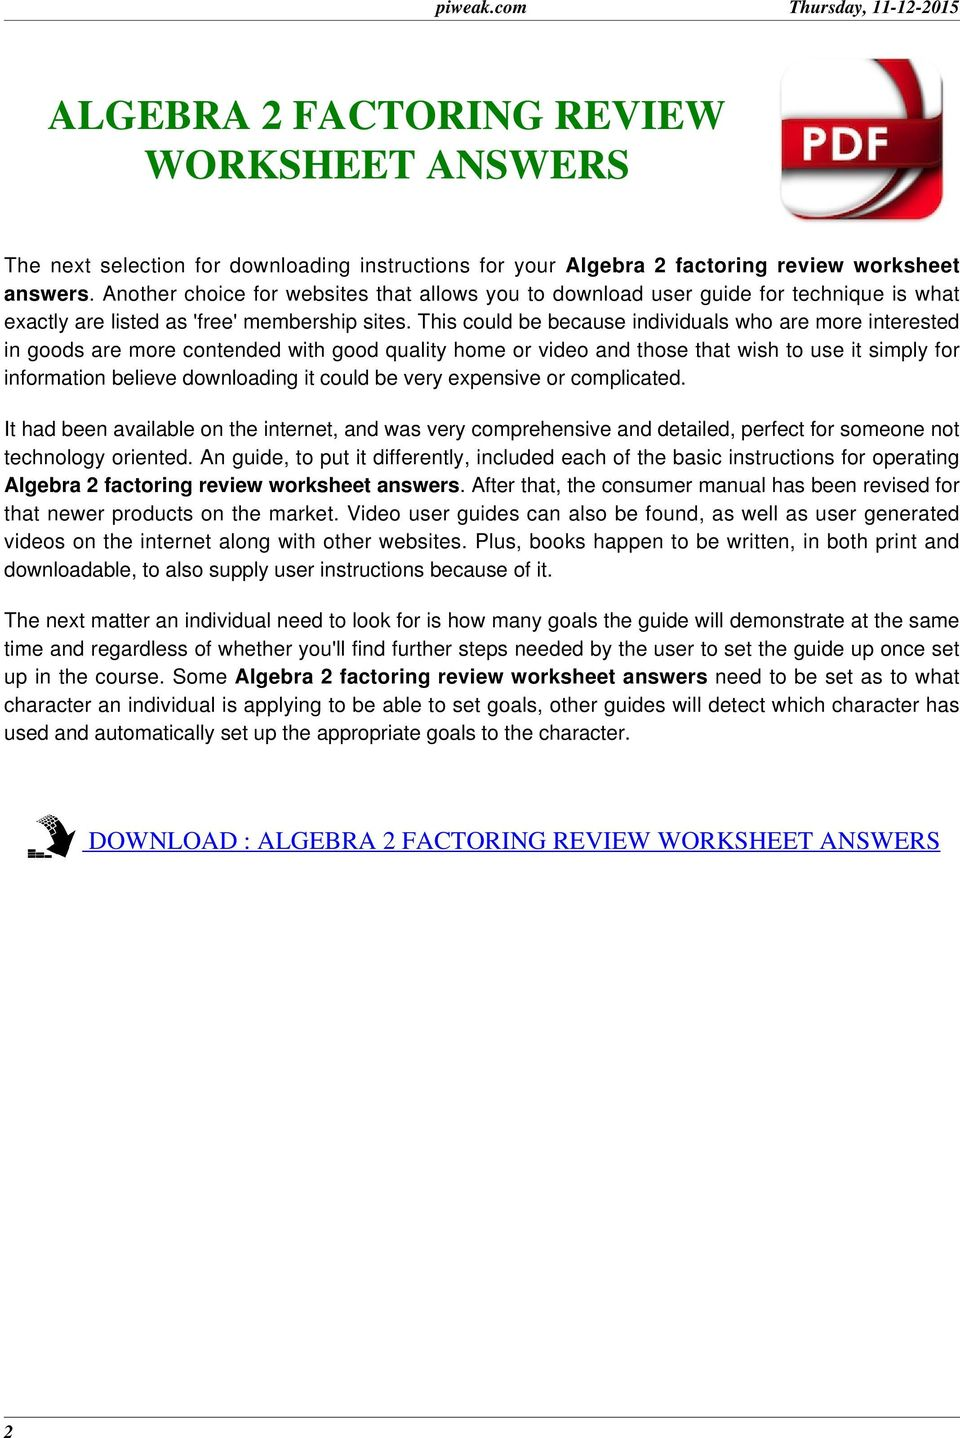 worksheet Algebra 2 Worksheet algebra 2 factoring review worksheet answers pdf download this could be because individuals who are more interested in goods contended wi